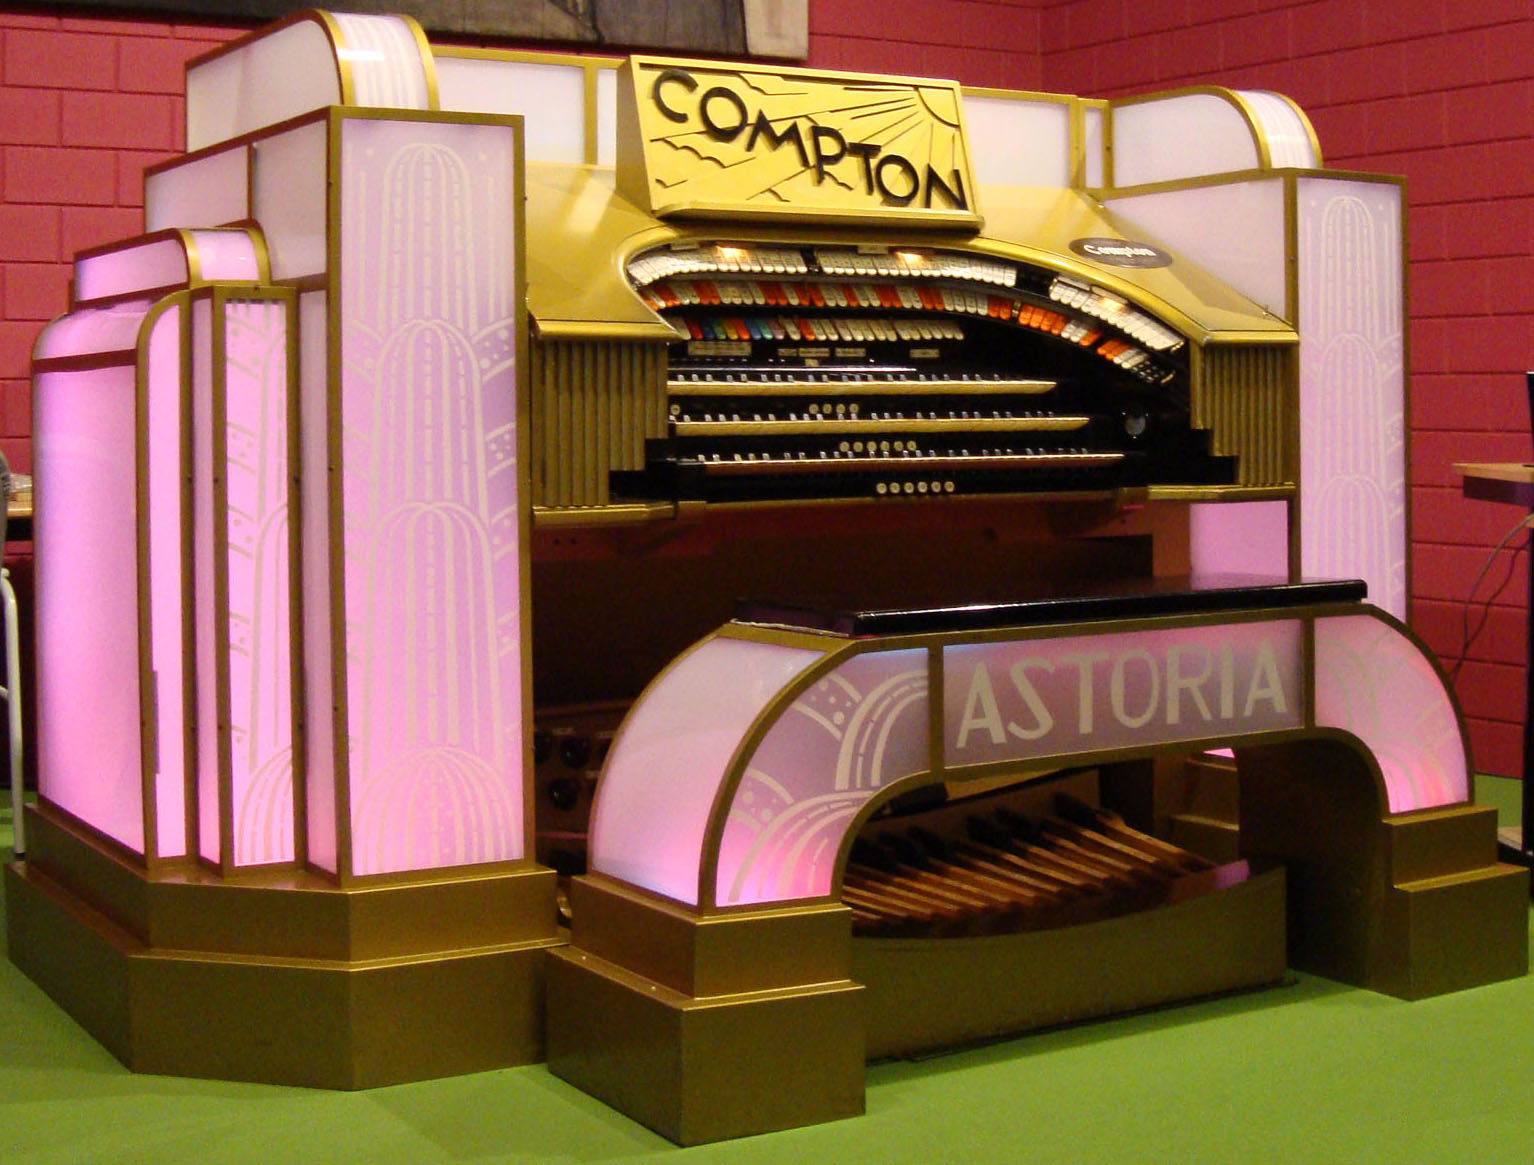 9-rank Compton cinema organ